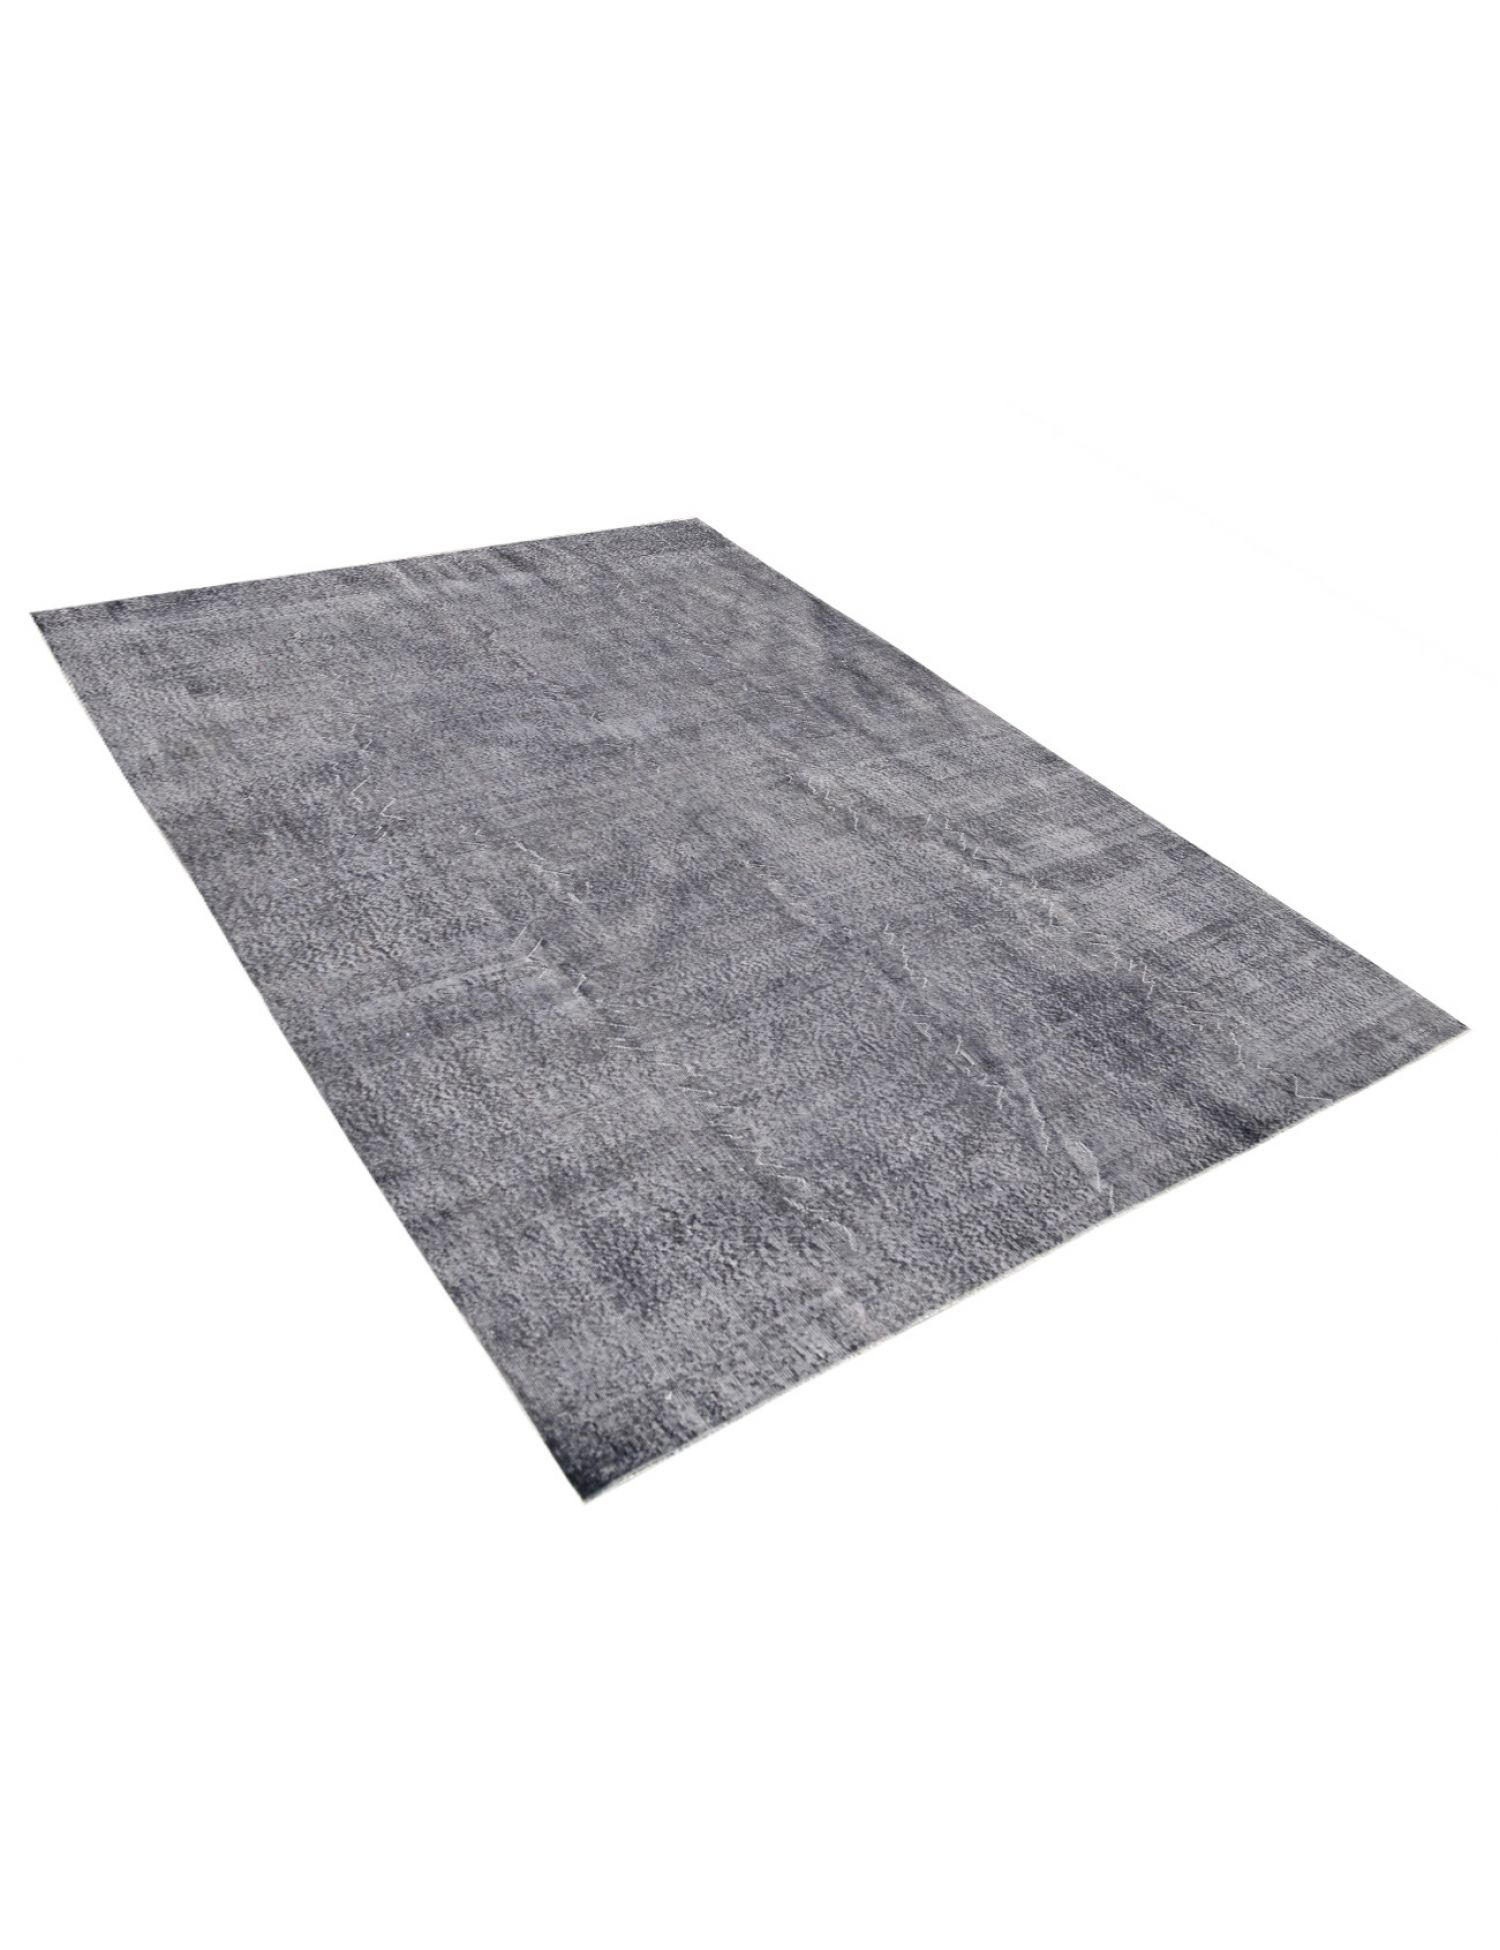 Vintage Carpet  grey <br/>302 x 207 cm